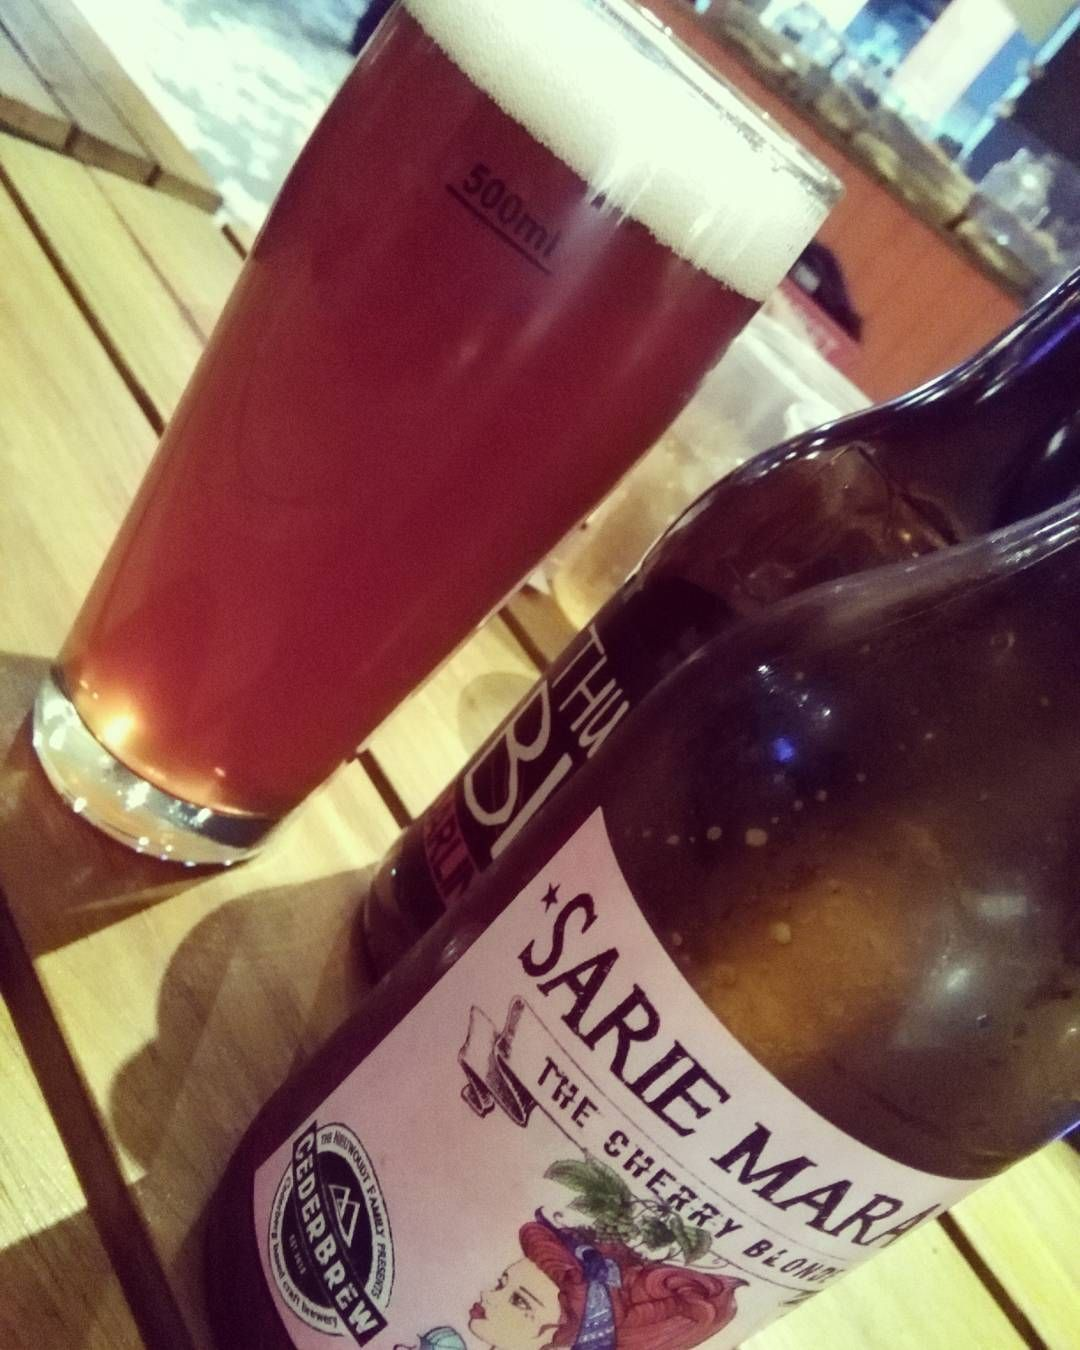 My Craft Beer Tour Continues With A Cherry Blonde By Sarie Marais With Images Beer Tours Craft Beer Instagram